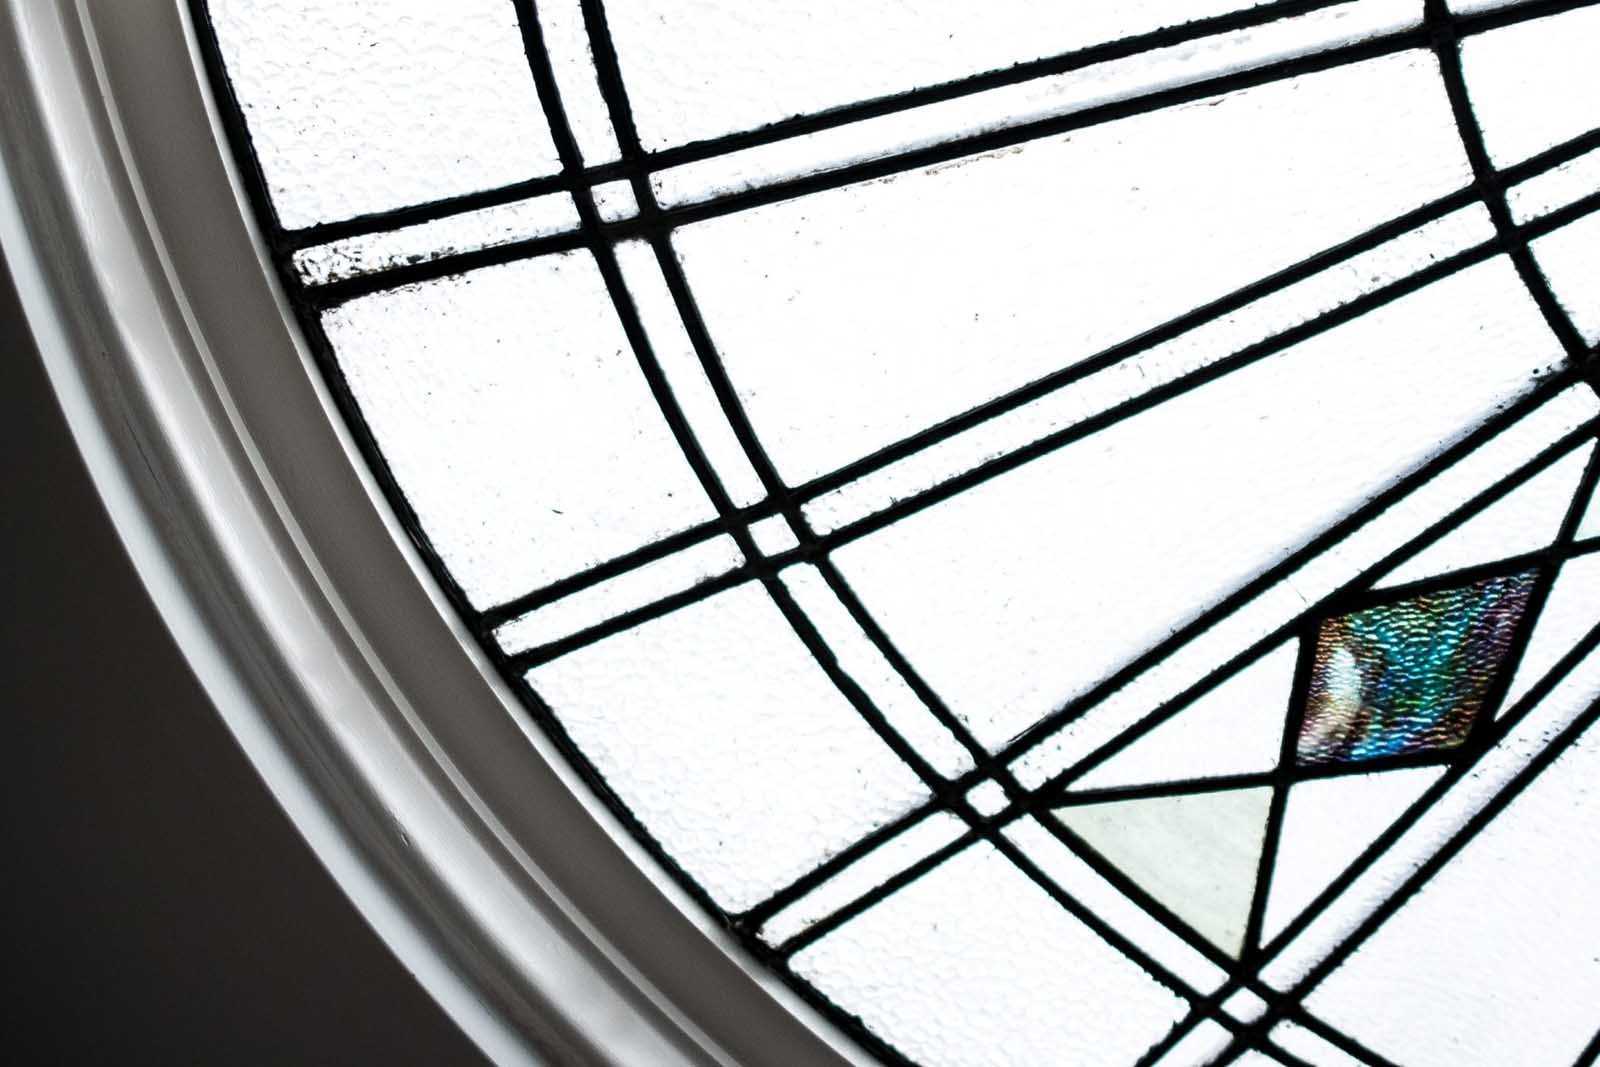 Part of a circular stain glass window